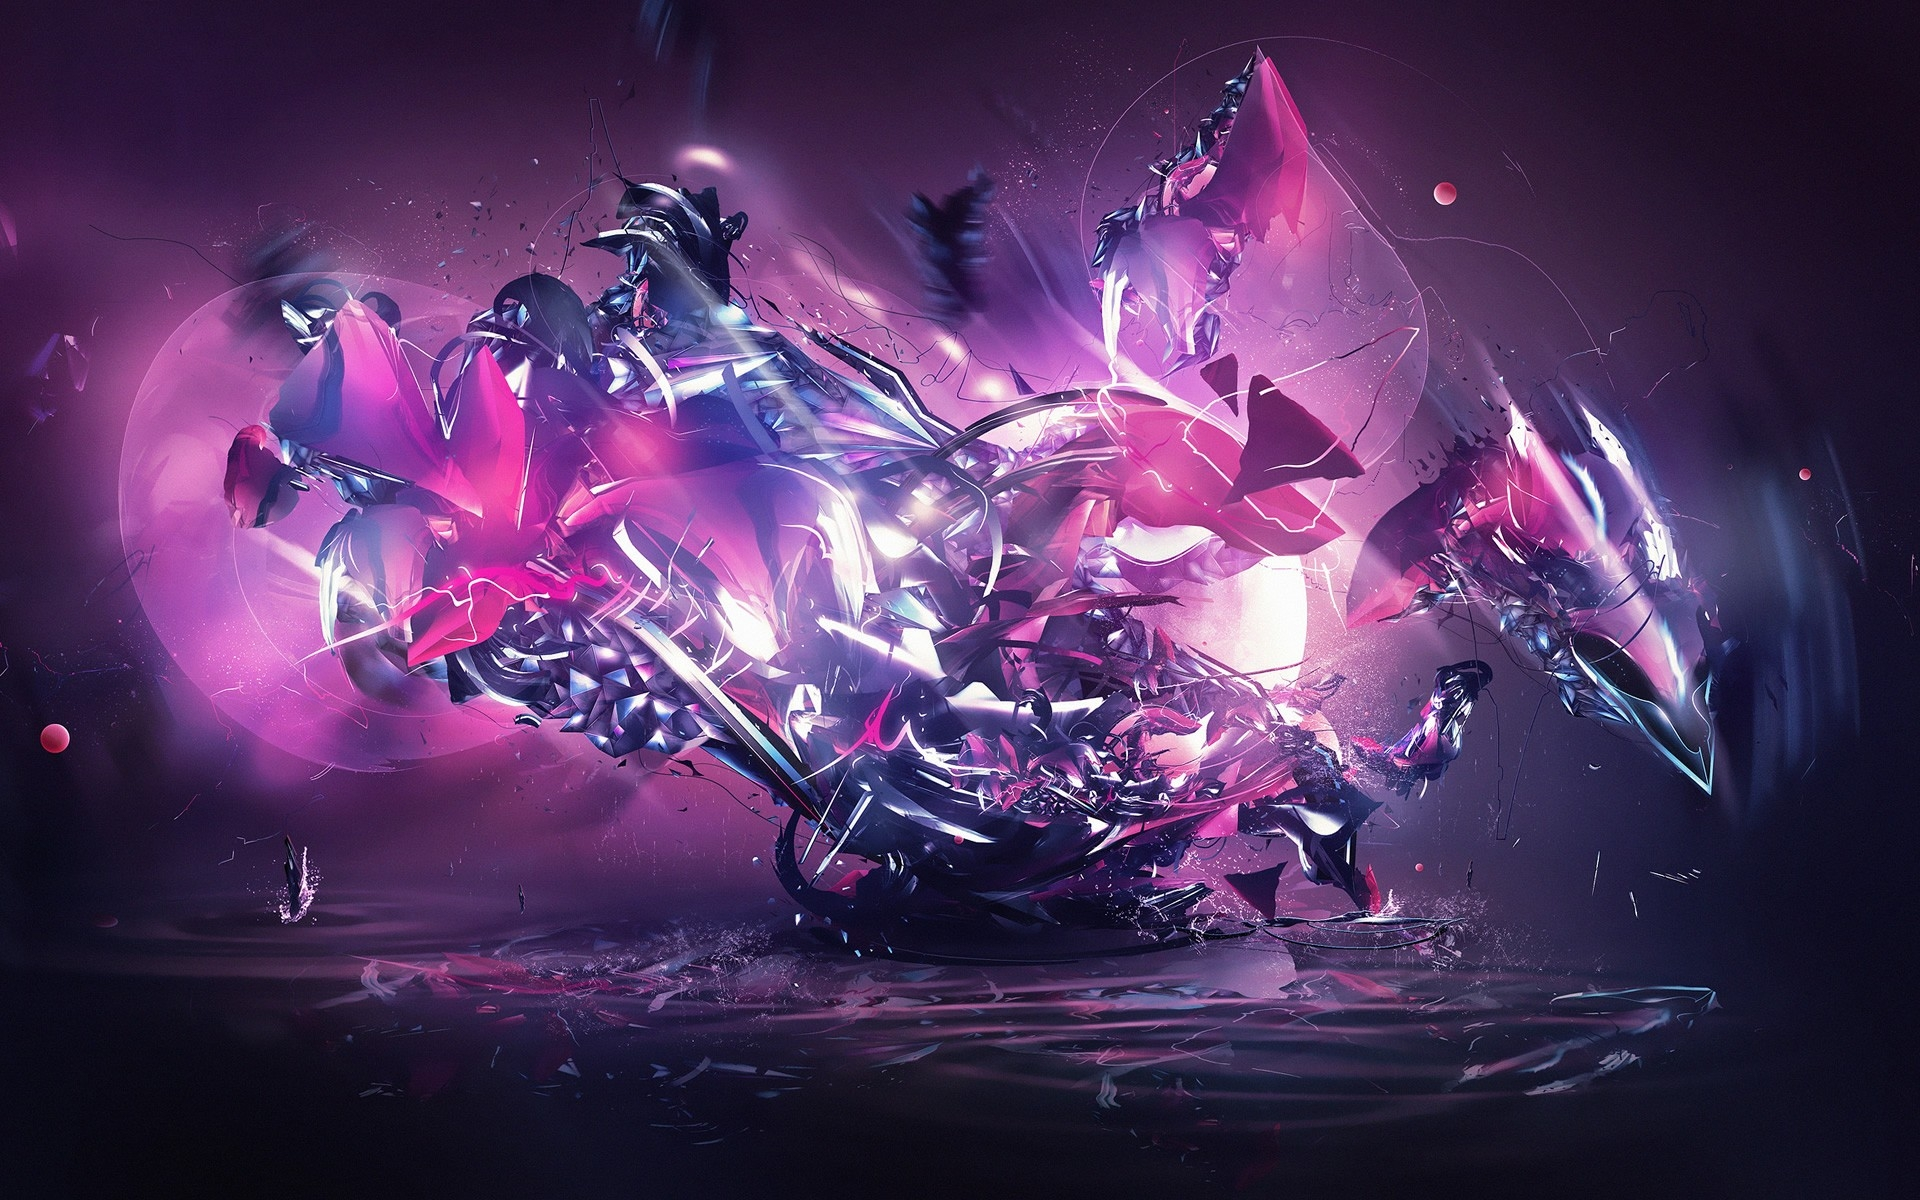 1920x1200 Dragon Explosion Pink Abstract Desktop PC And Mac Wallpaper